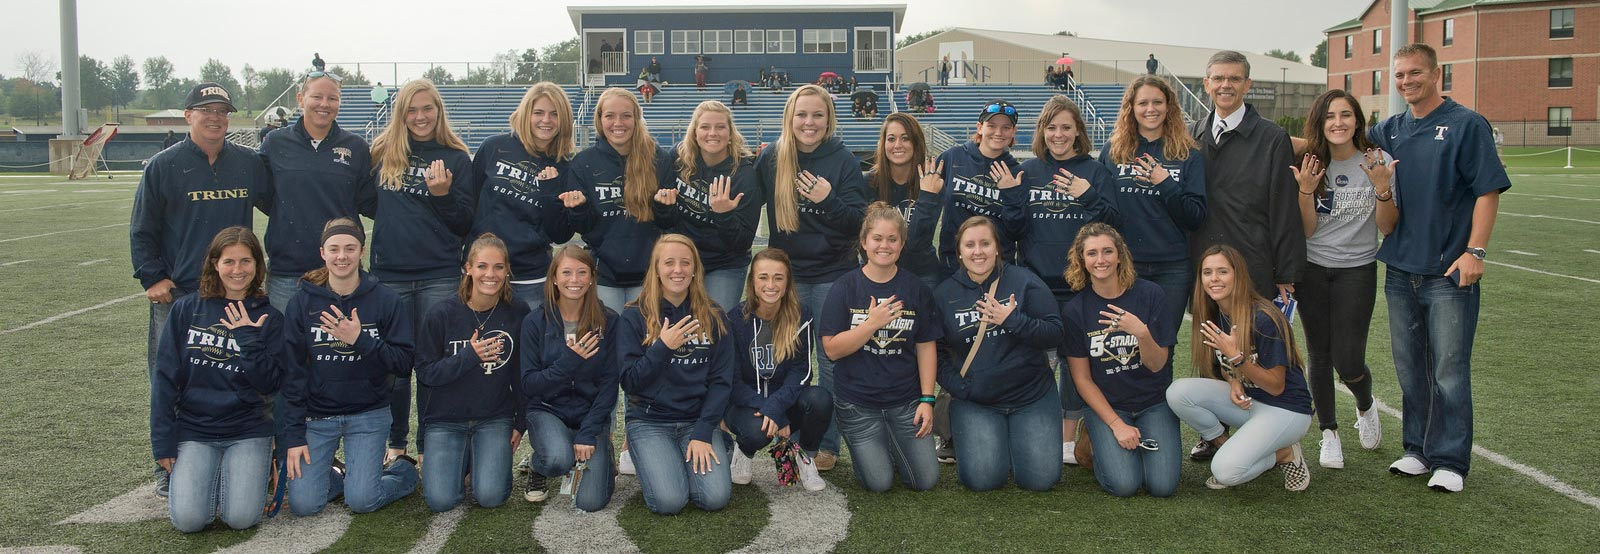 Softball team showing off rings